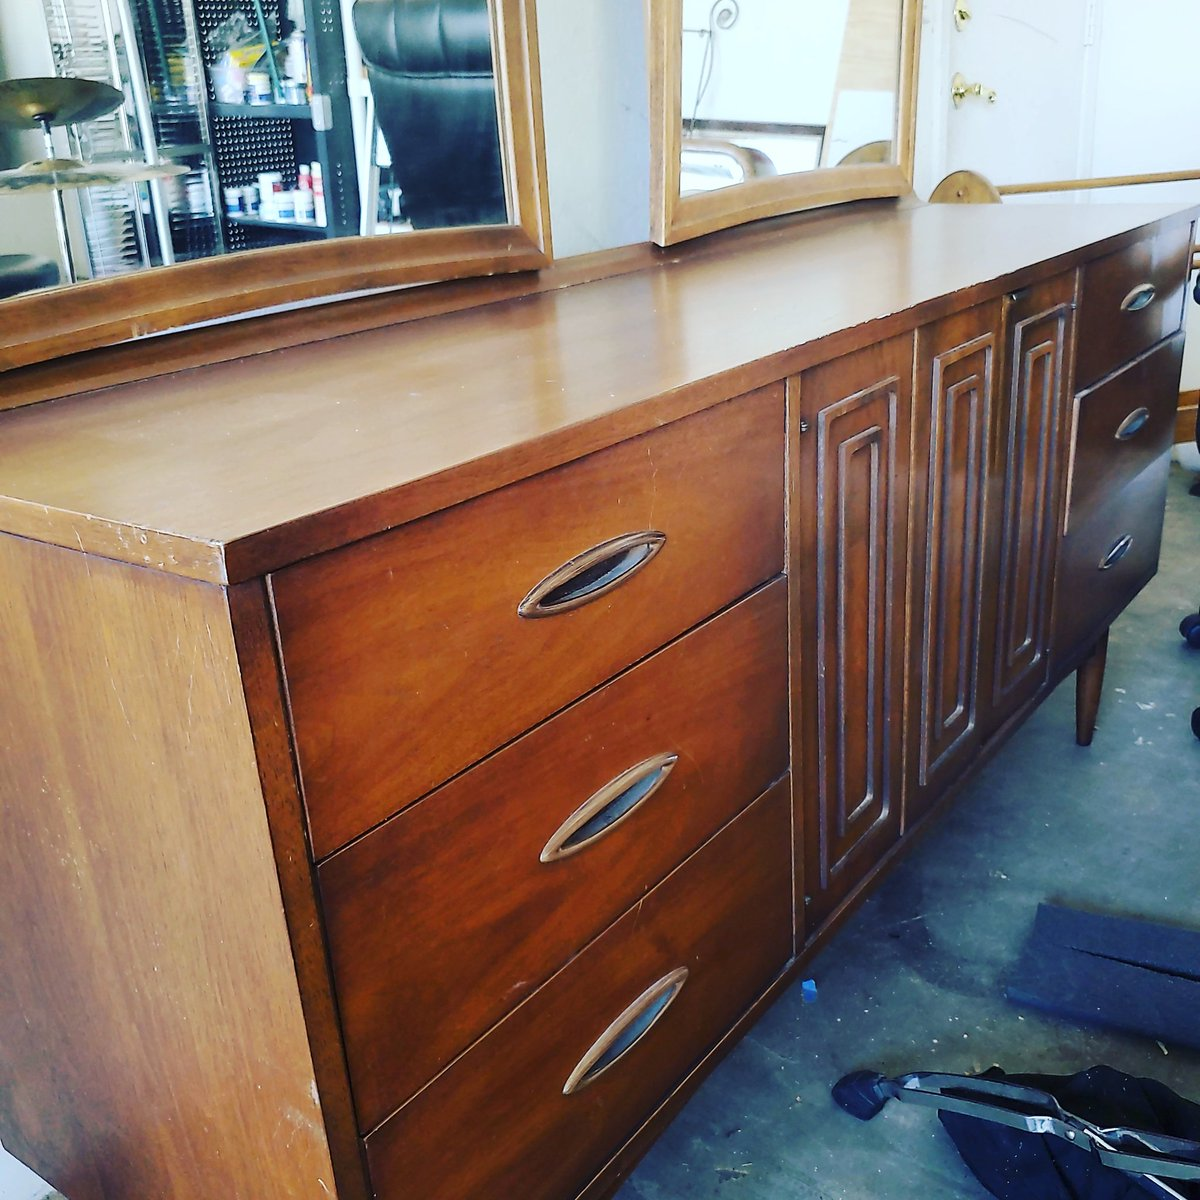 Not even going to paint this beauty. She is lovely just the way she is! Available in Phoenix, AZ!  #MCM #midcenturymodernhome #midcenturymoderndecor #midcenturyhome #midcenturyfurniture #midcenturystylepic.twitter.com/VltZkR6wbi